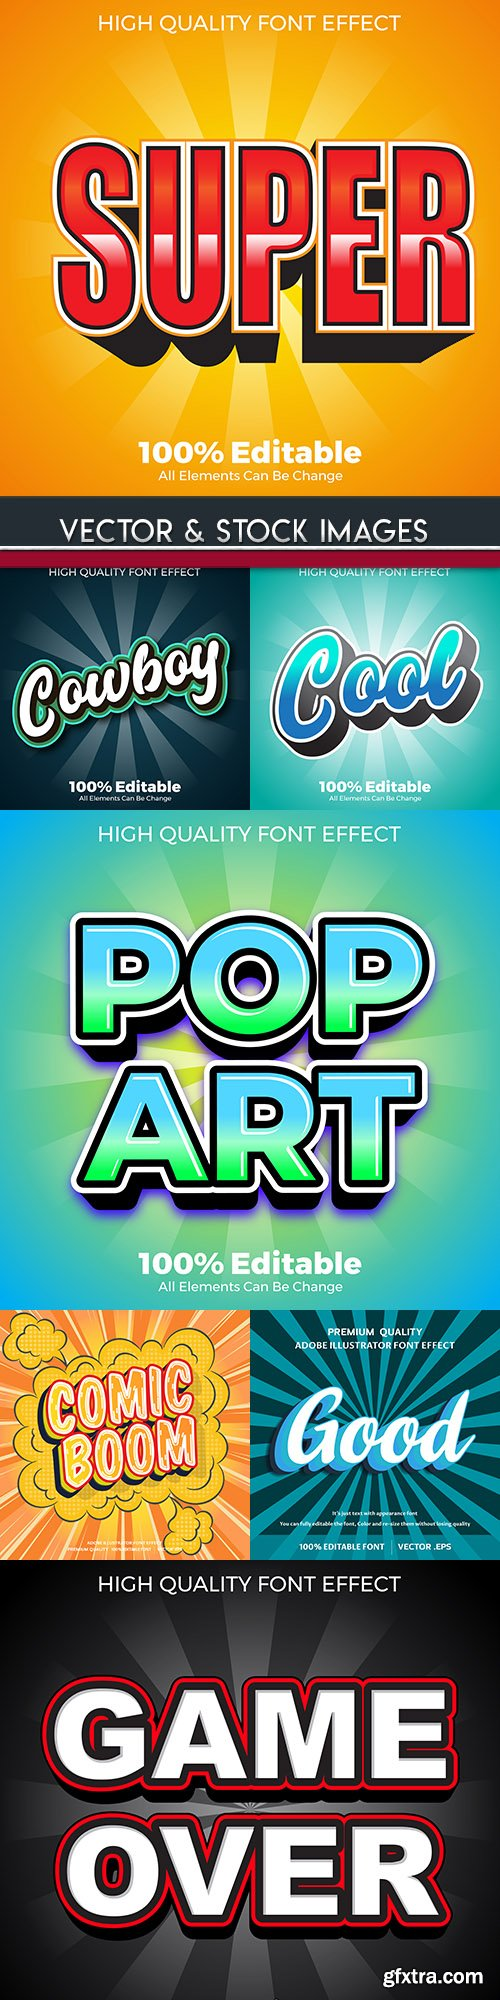 Vintage retro and pop art text effect lettering template